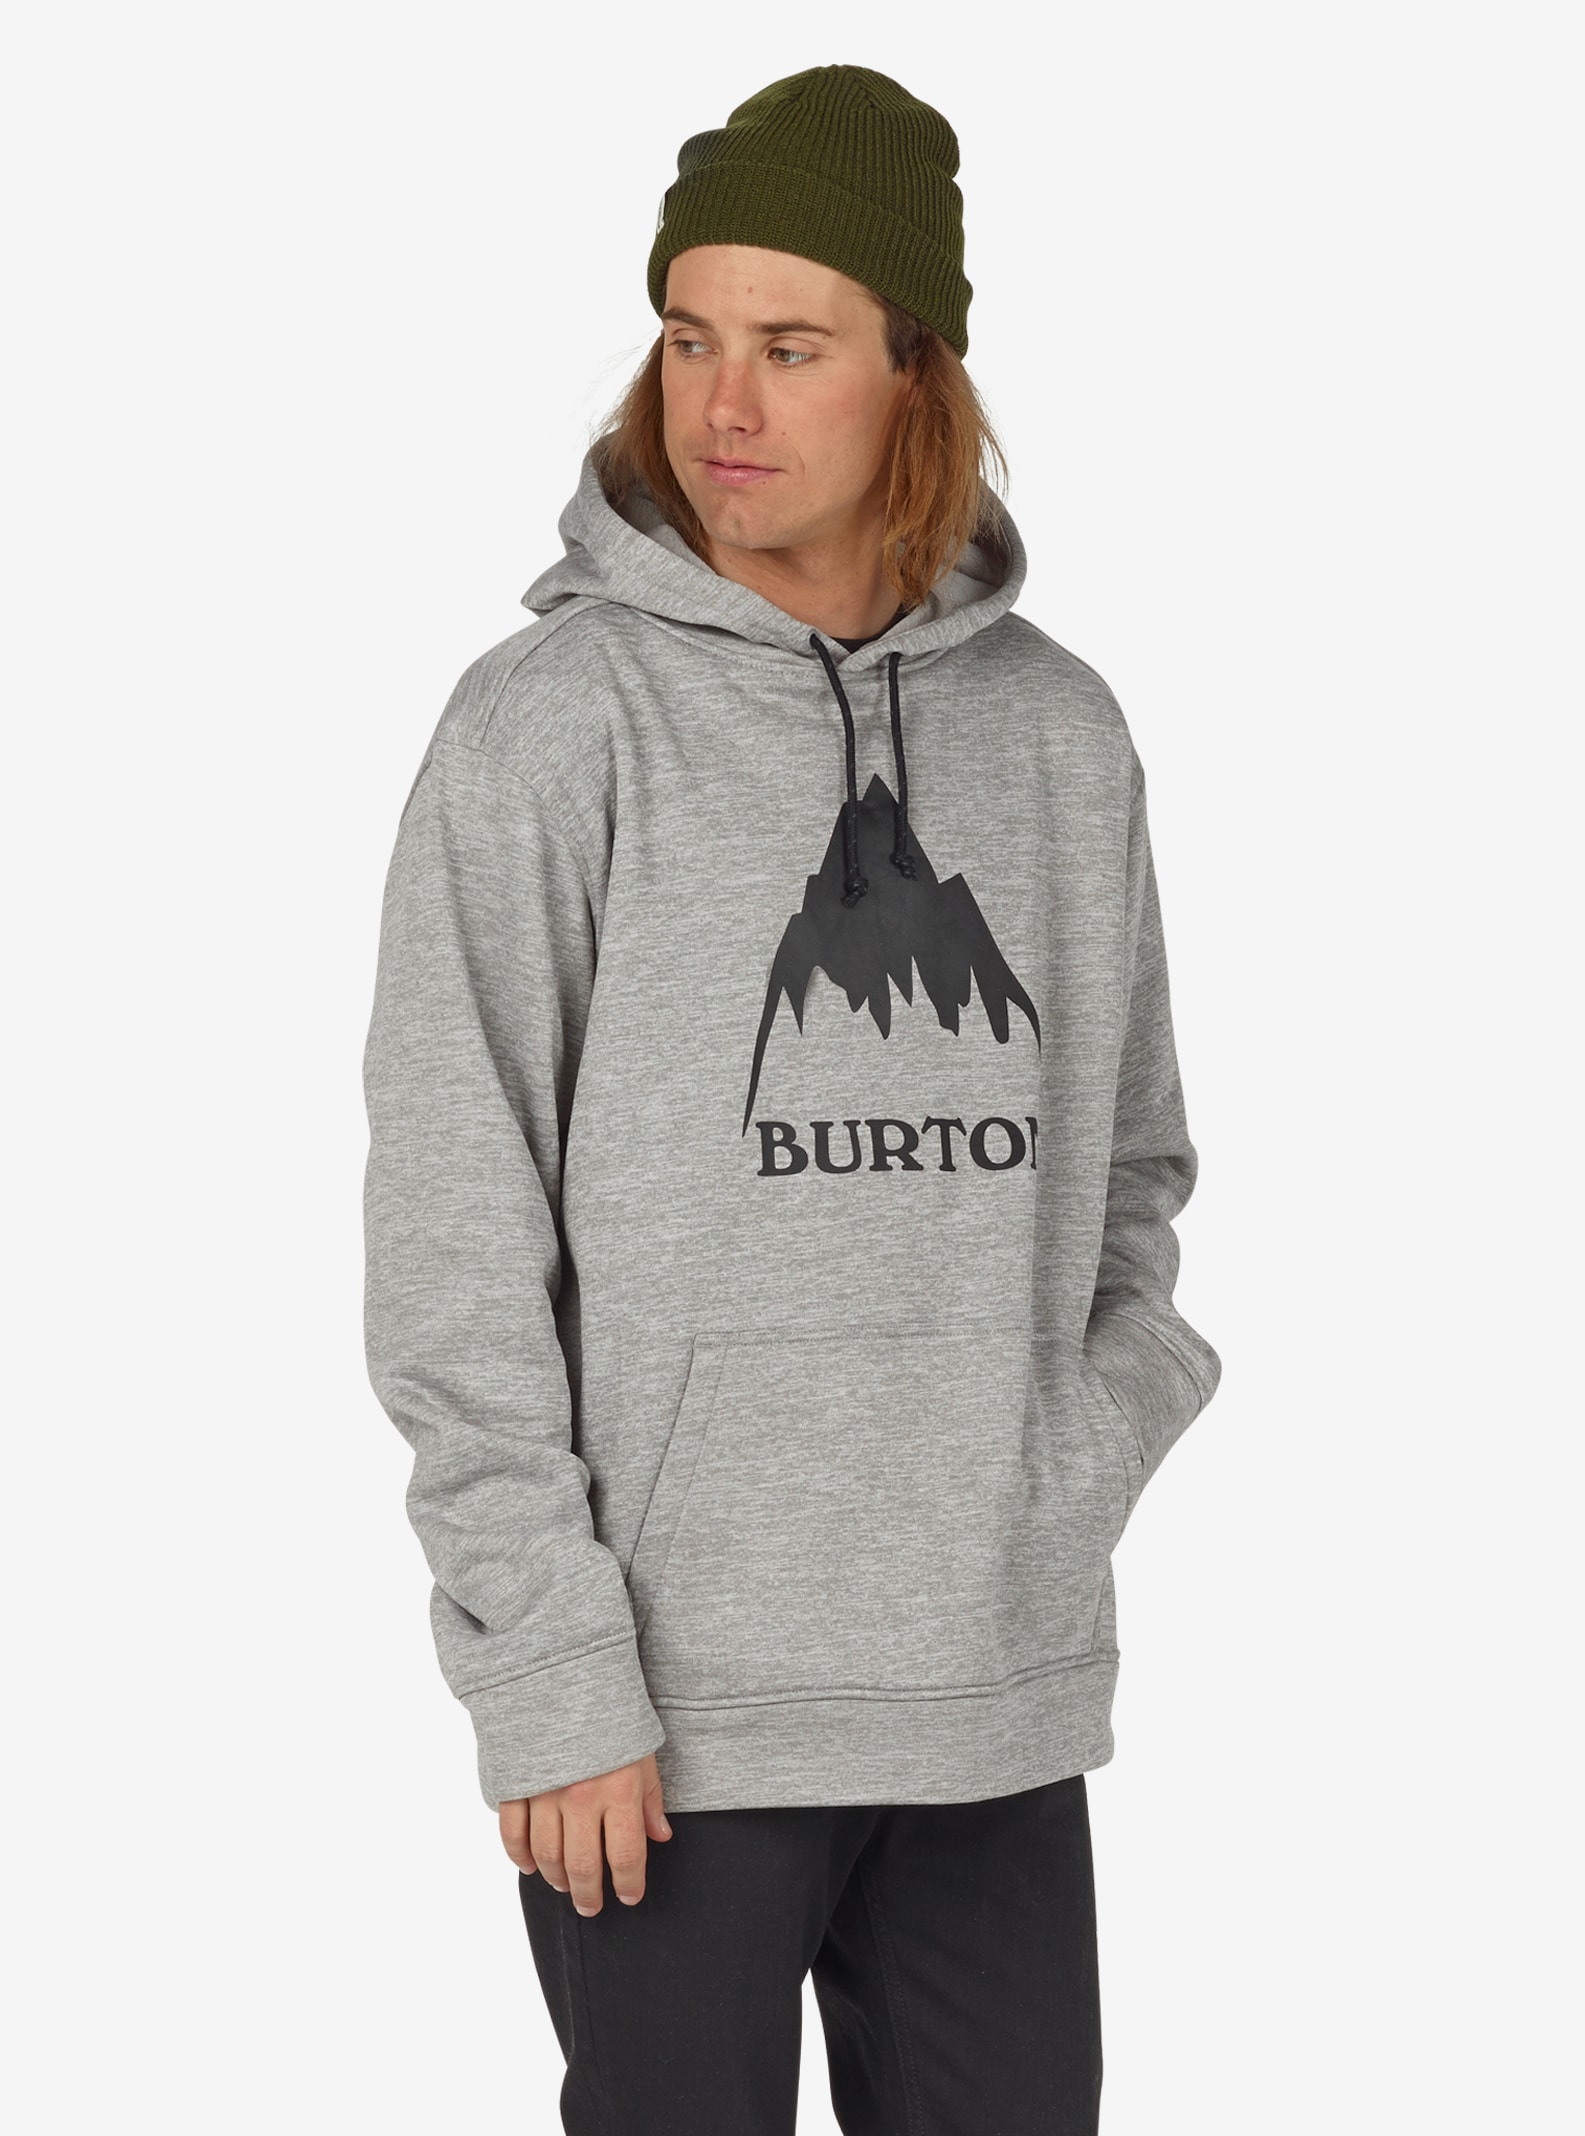 Men's Burton Oak Pullover Hoodie shown in Monument Heather